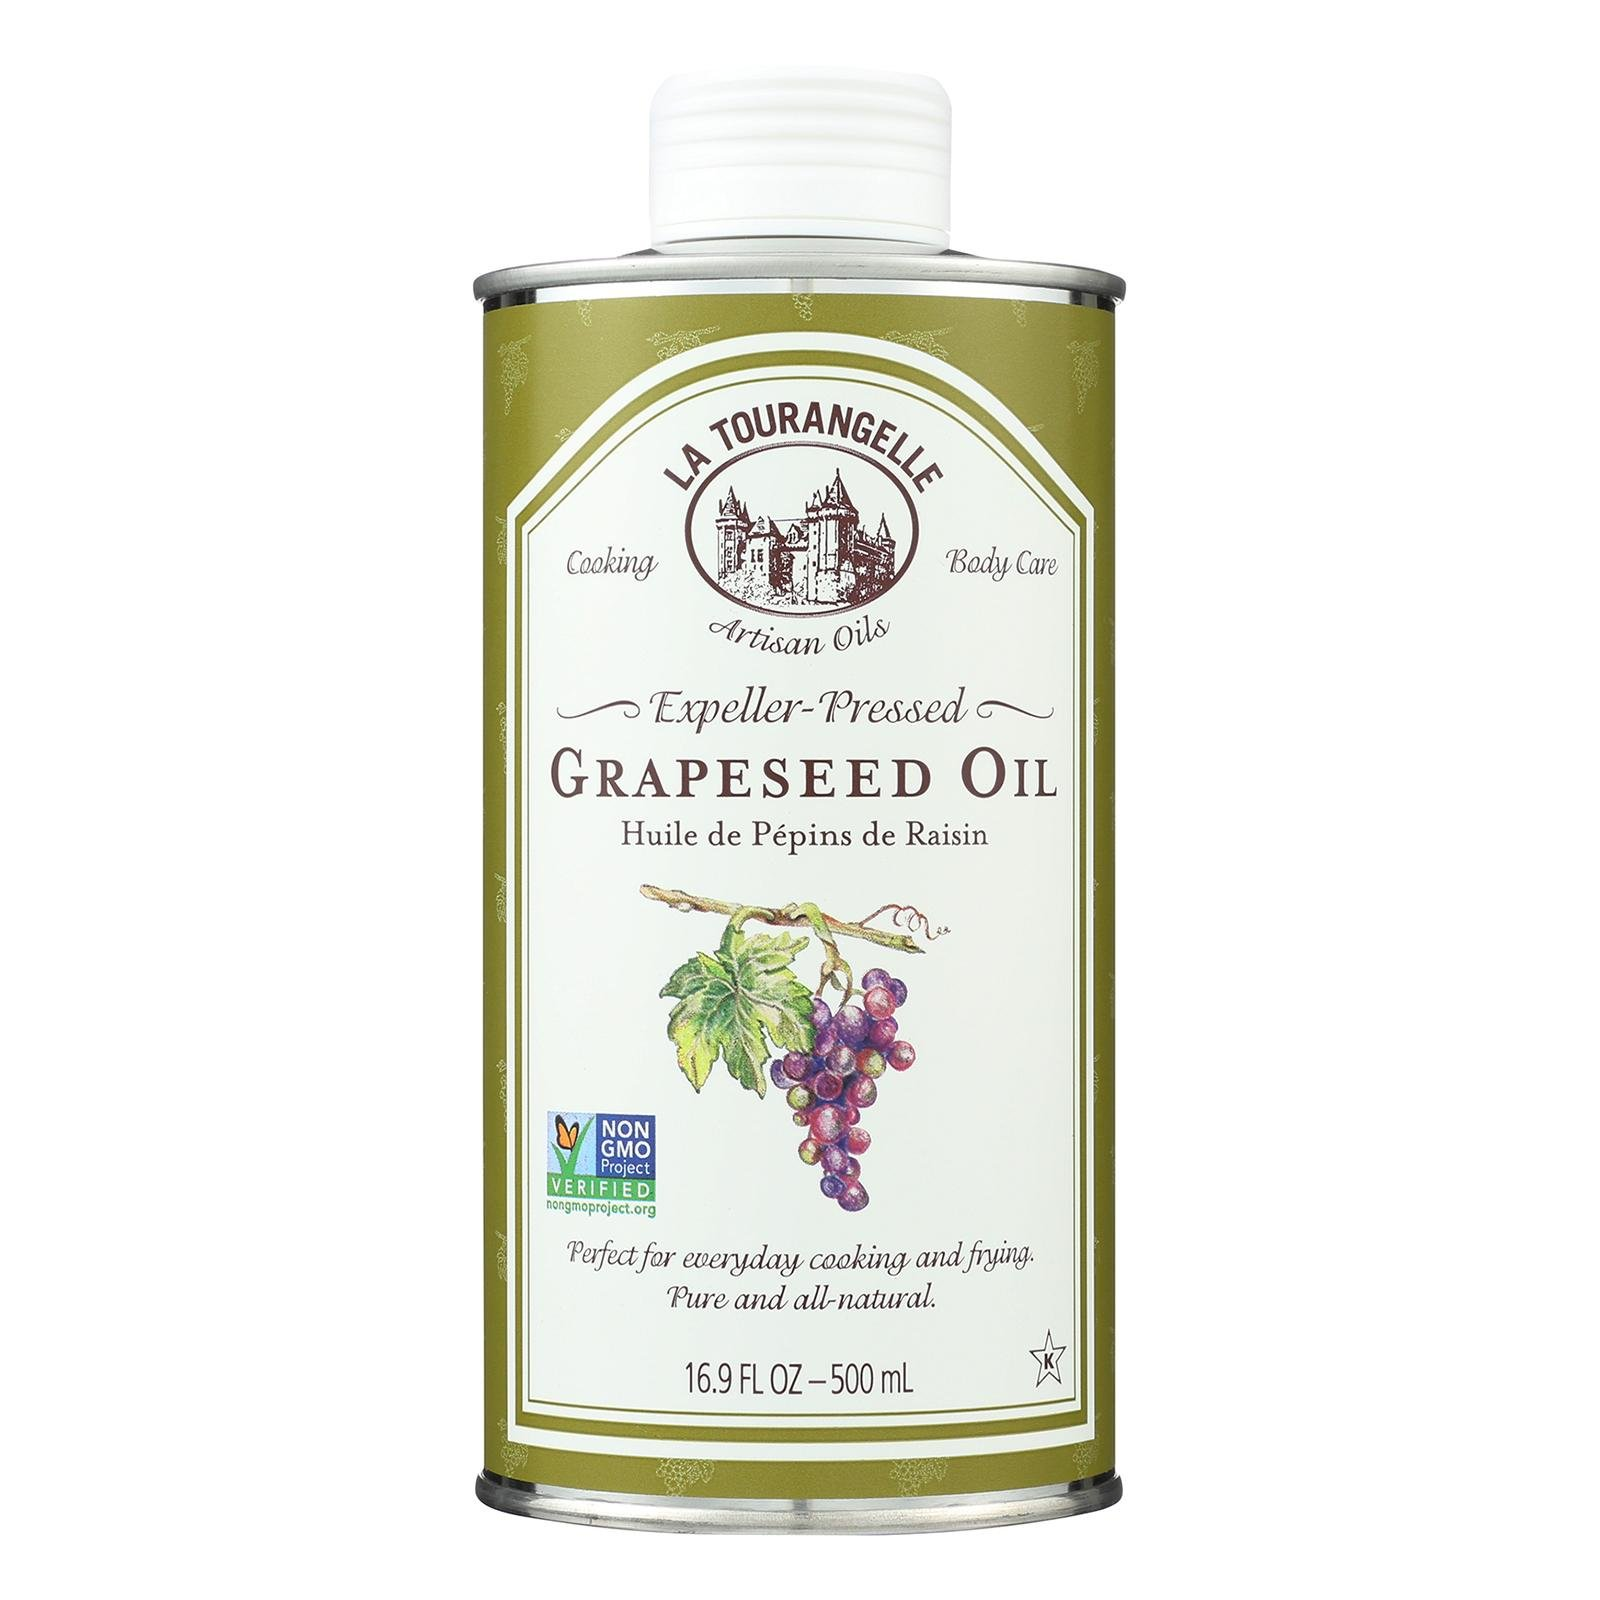 La Tourangelle Grapeseed Oil - Case of 6 - 16.9 Fl oz. by La Tourangelle